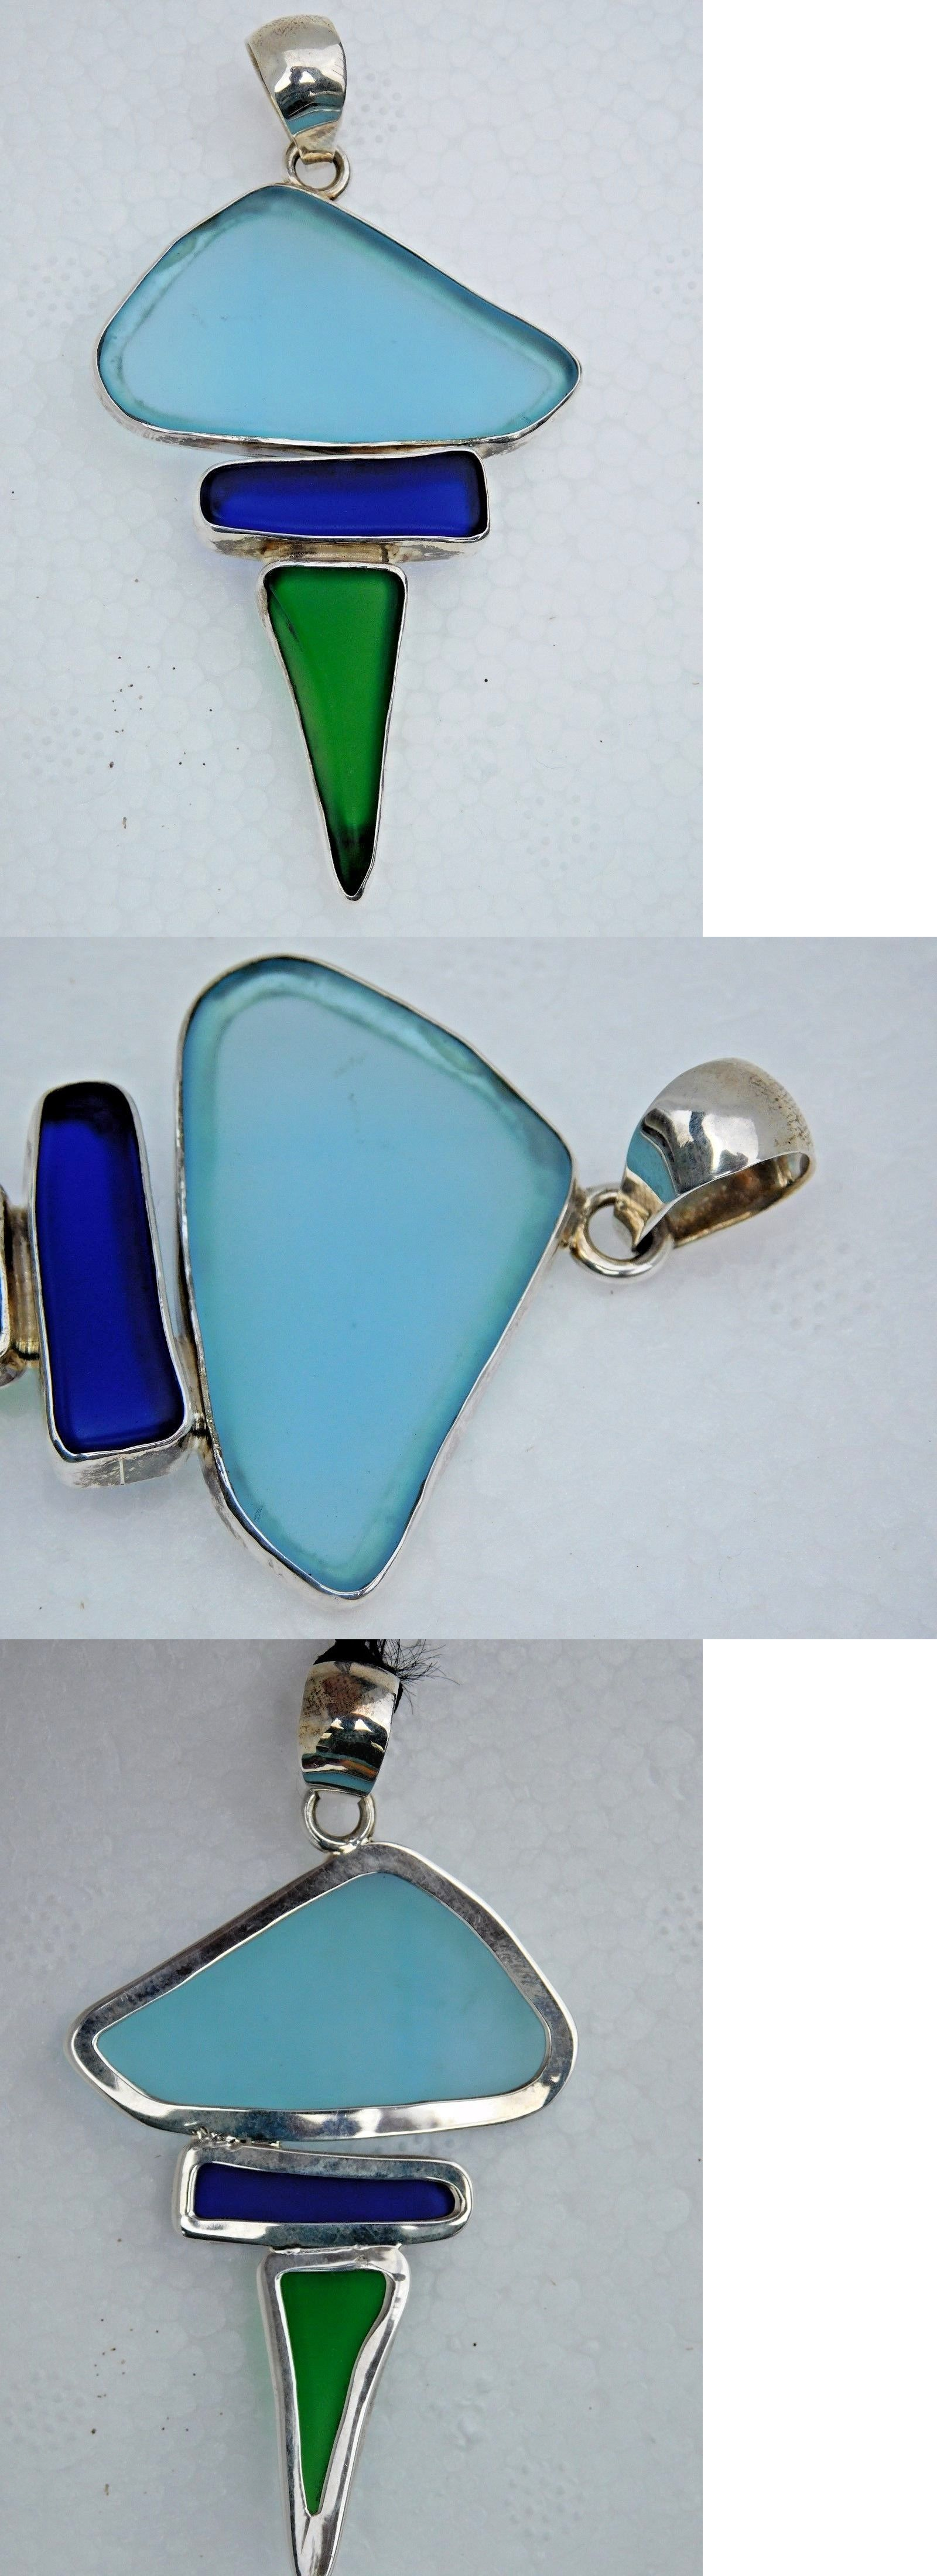 Necklaces and Pendants 110655: Handcrafted Multi Color Sea Glass And Sterling Silver Pendant -> BUY IT NOW ONLY: $99 on eBay!